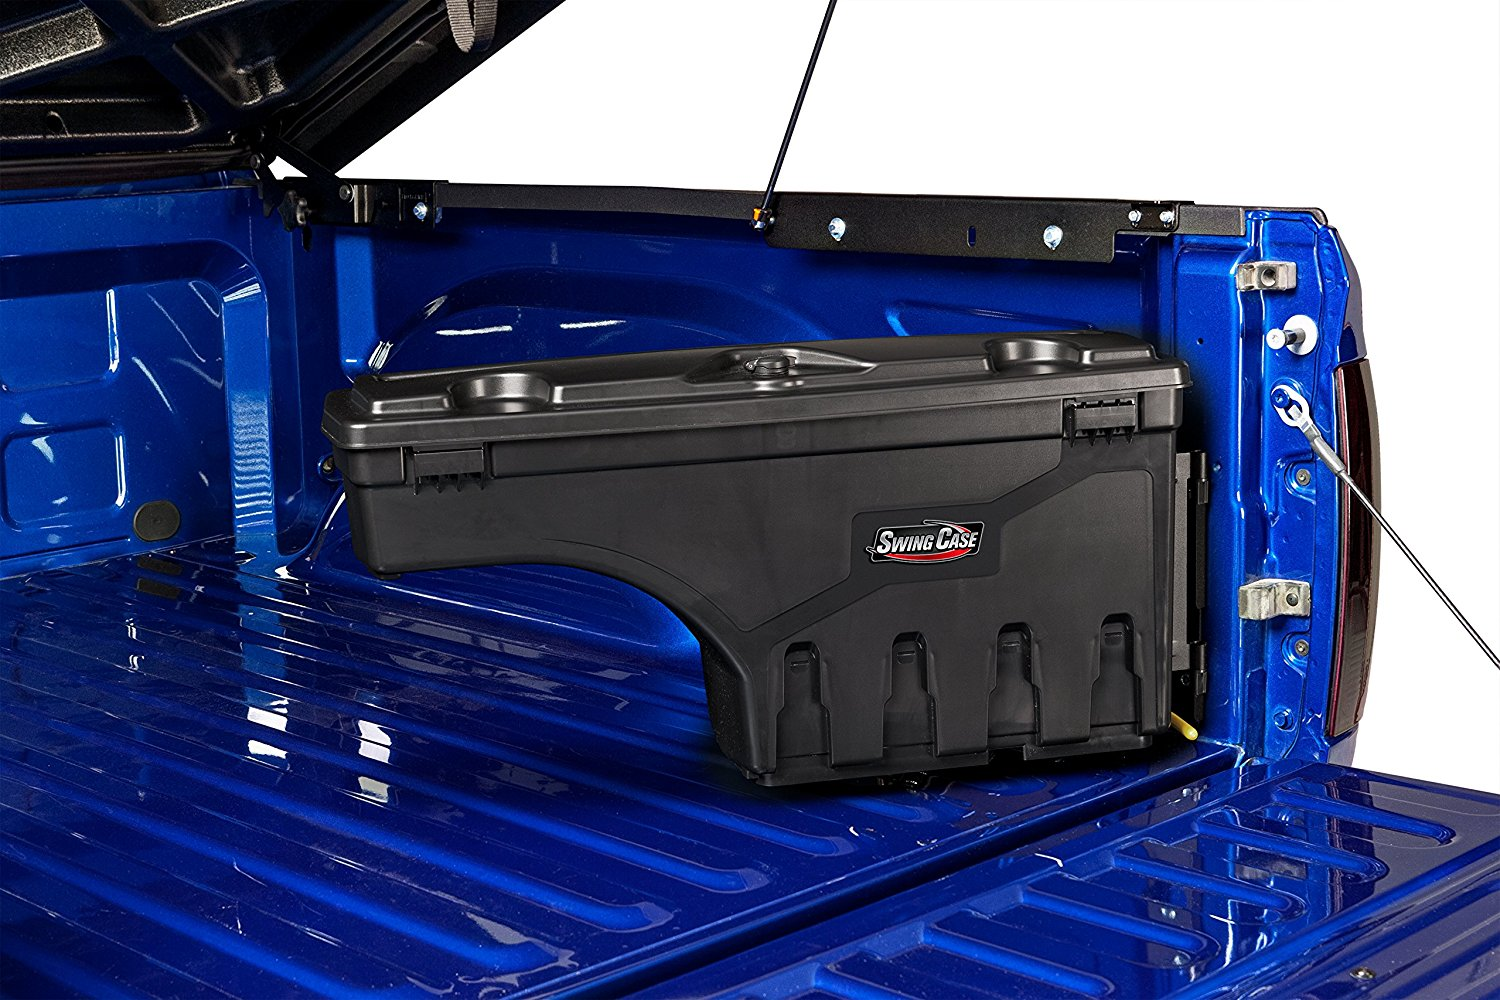 Trunk Box With Wheels Garage Storage Locking ToolBox Pickup Truck Bed Organizer